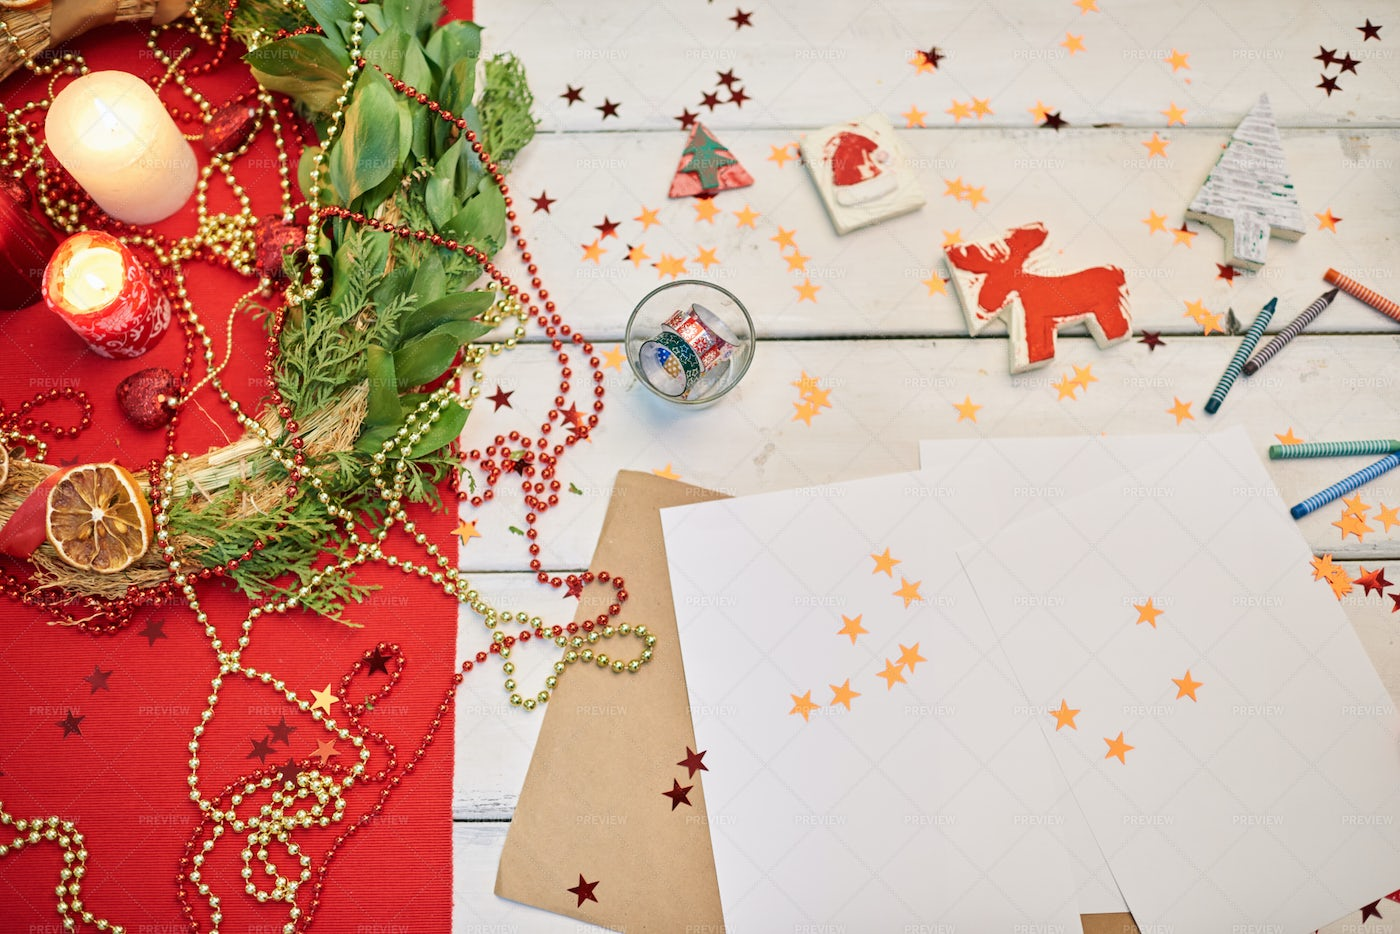 Making Handmade Decorations For...: Stock Photos